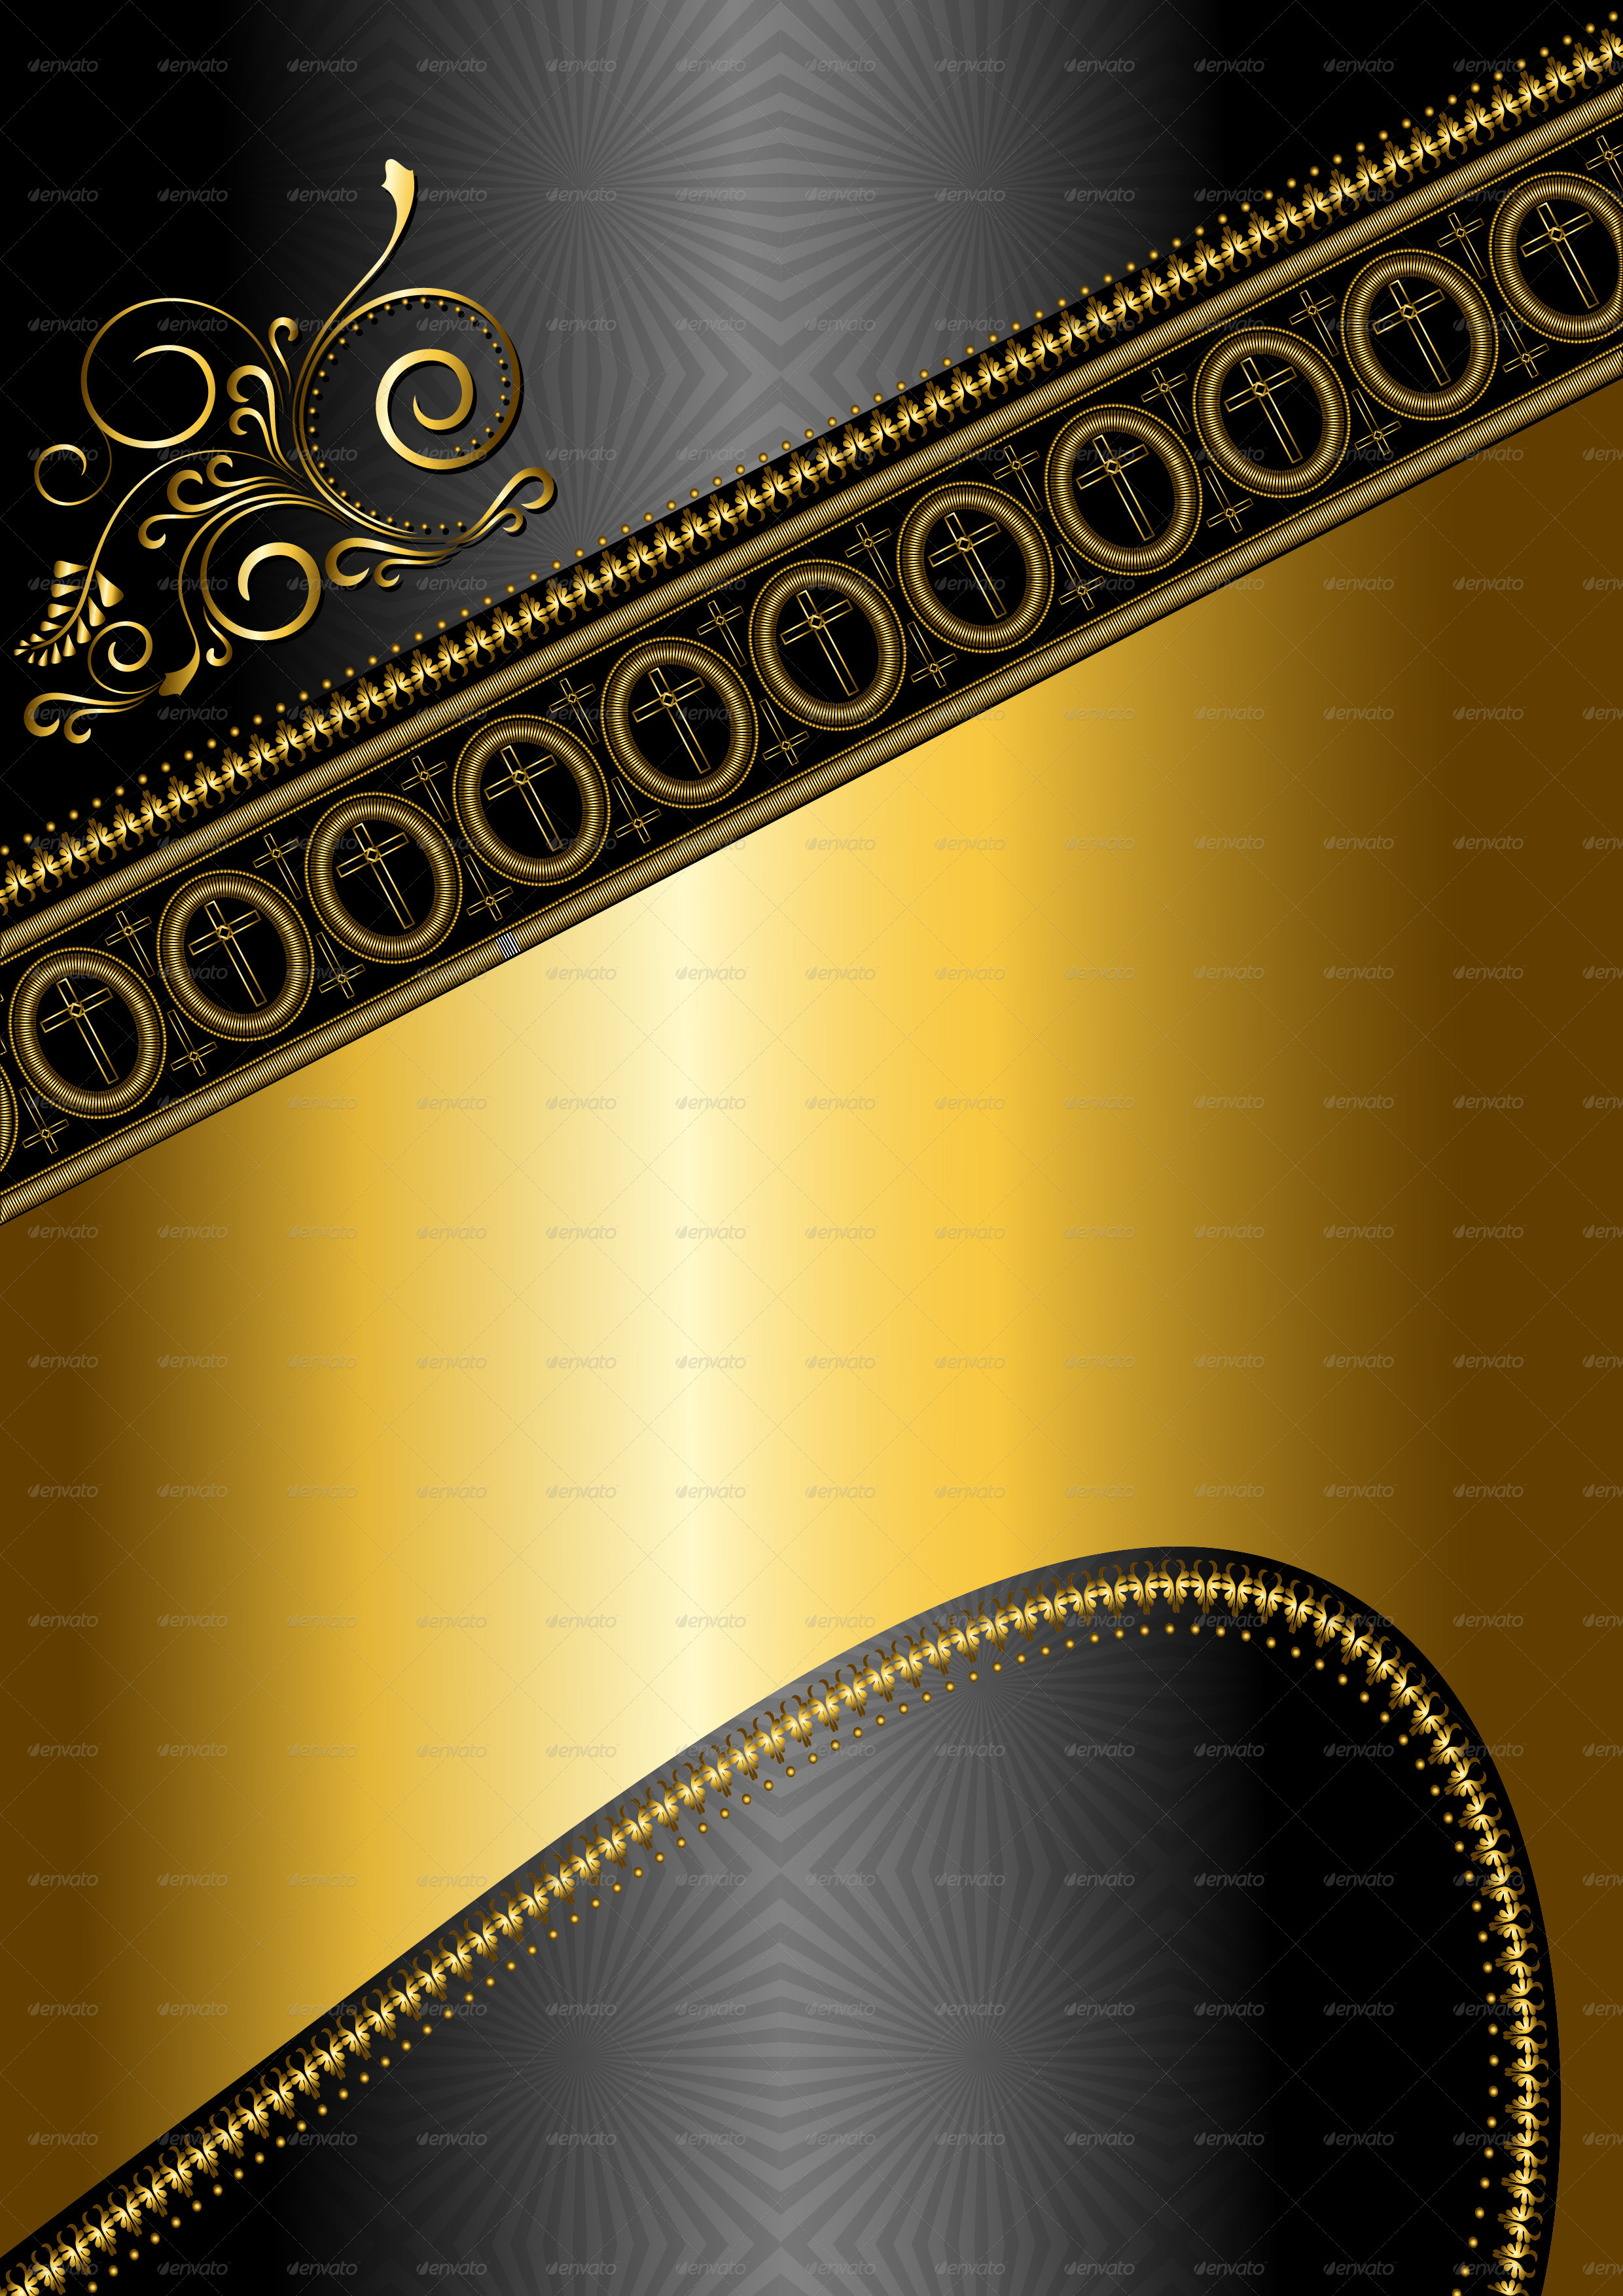 Golden Pattern and Border with Crosses by tatyanamh ... Fancy Corner Border Vector